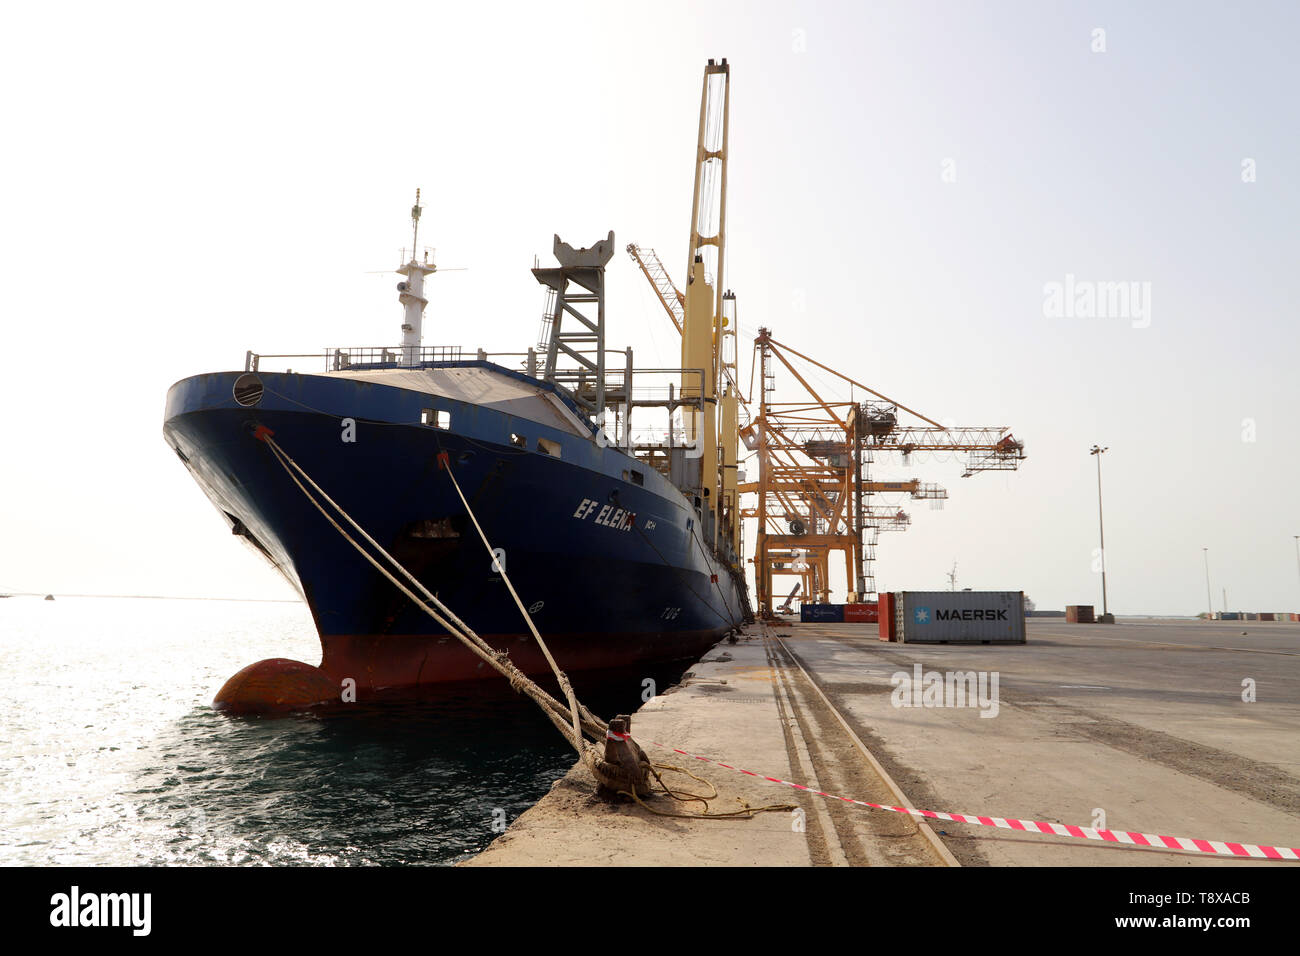 (190515) --  HODEIDAH, May 15, 2019 (Xinhua) -- A ship is seen docked at the Hodeidah port in Hodeidah, Yemen, on May 14, 2019. The UN monitoring mission in Yemen on Tuesday welcomed the Houthi rebels' handover of the security of Hodeidah ports to the coast guards. (Xinhua) - Stock Image